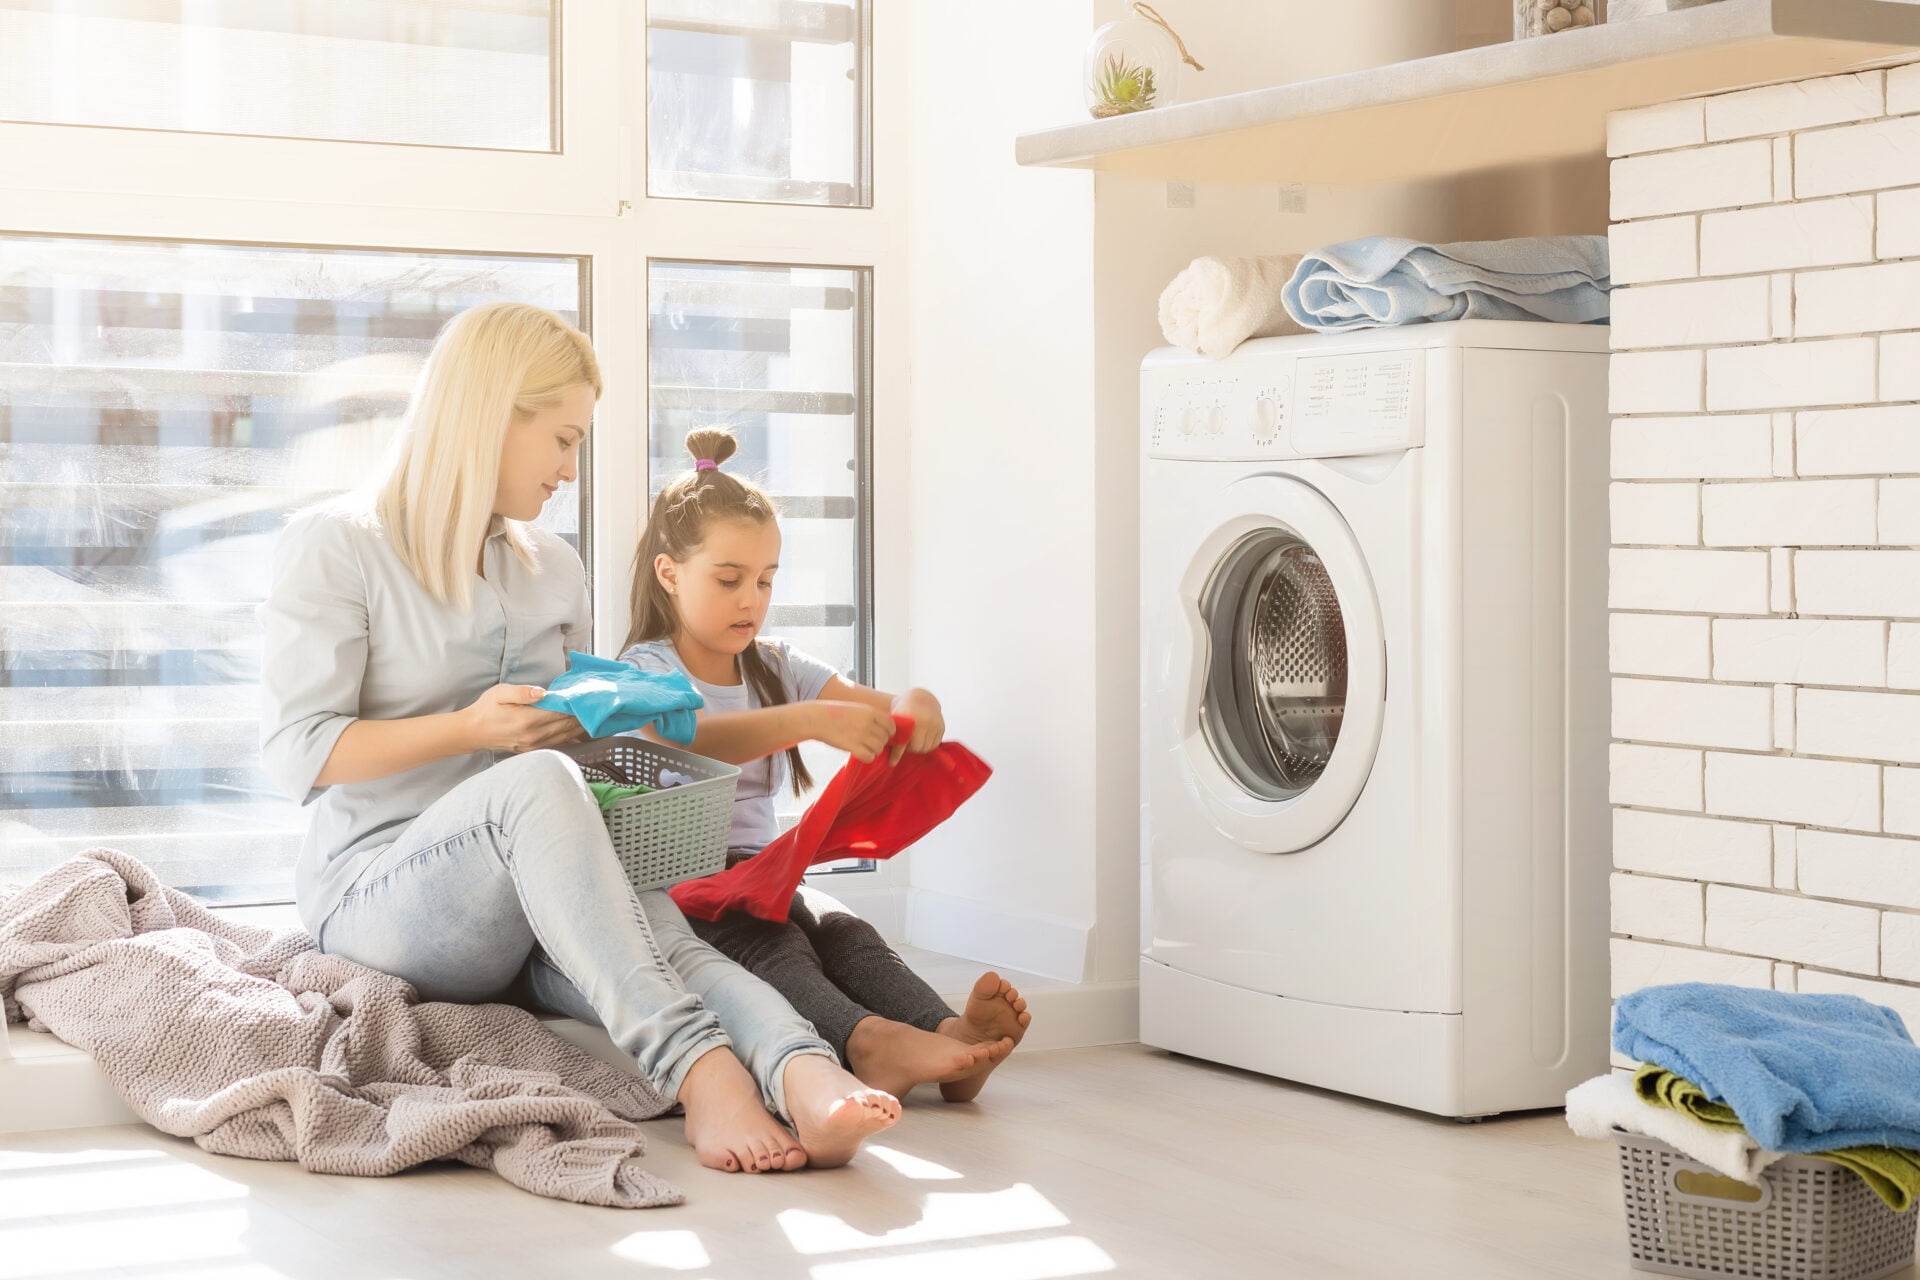 Happy housewife and her daughter with linen near washing machine